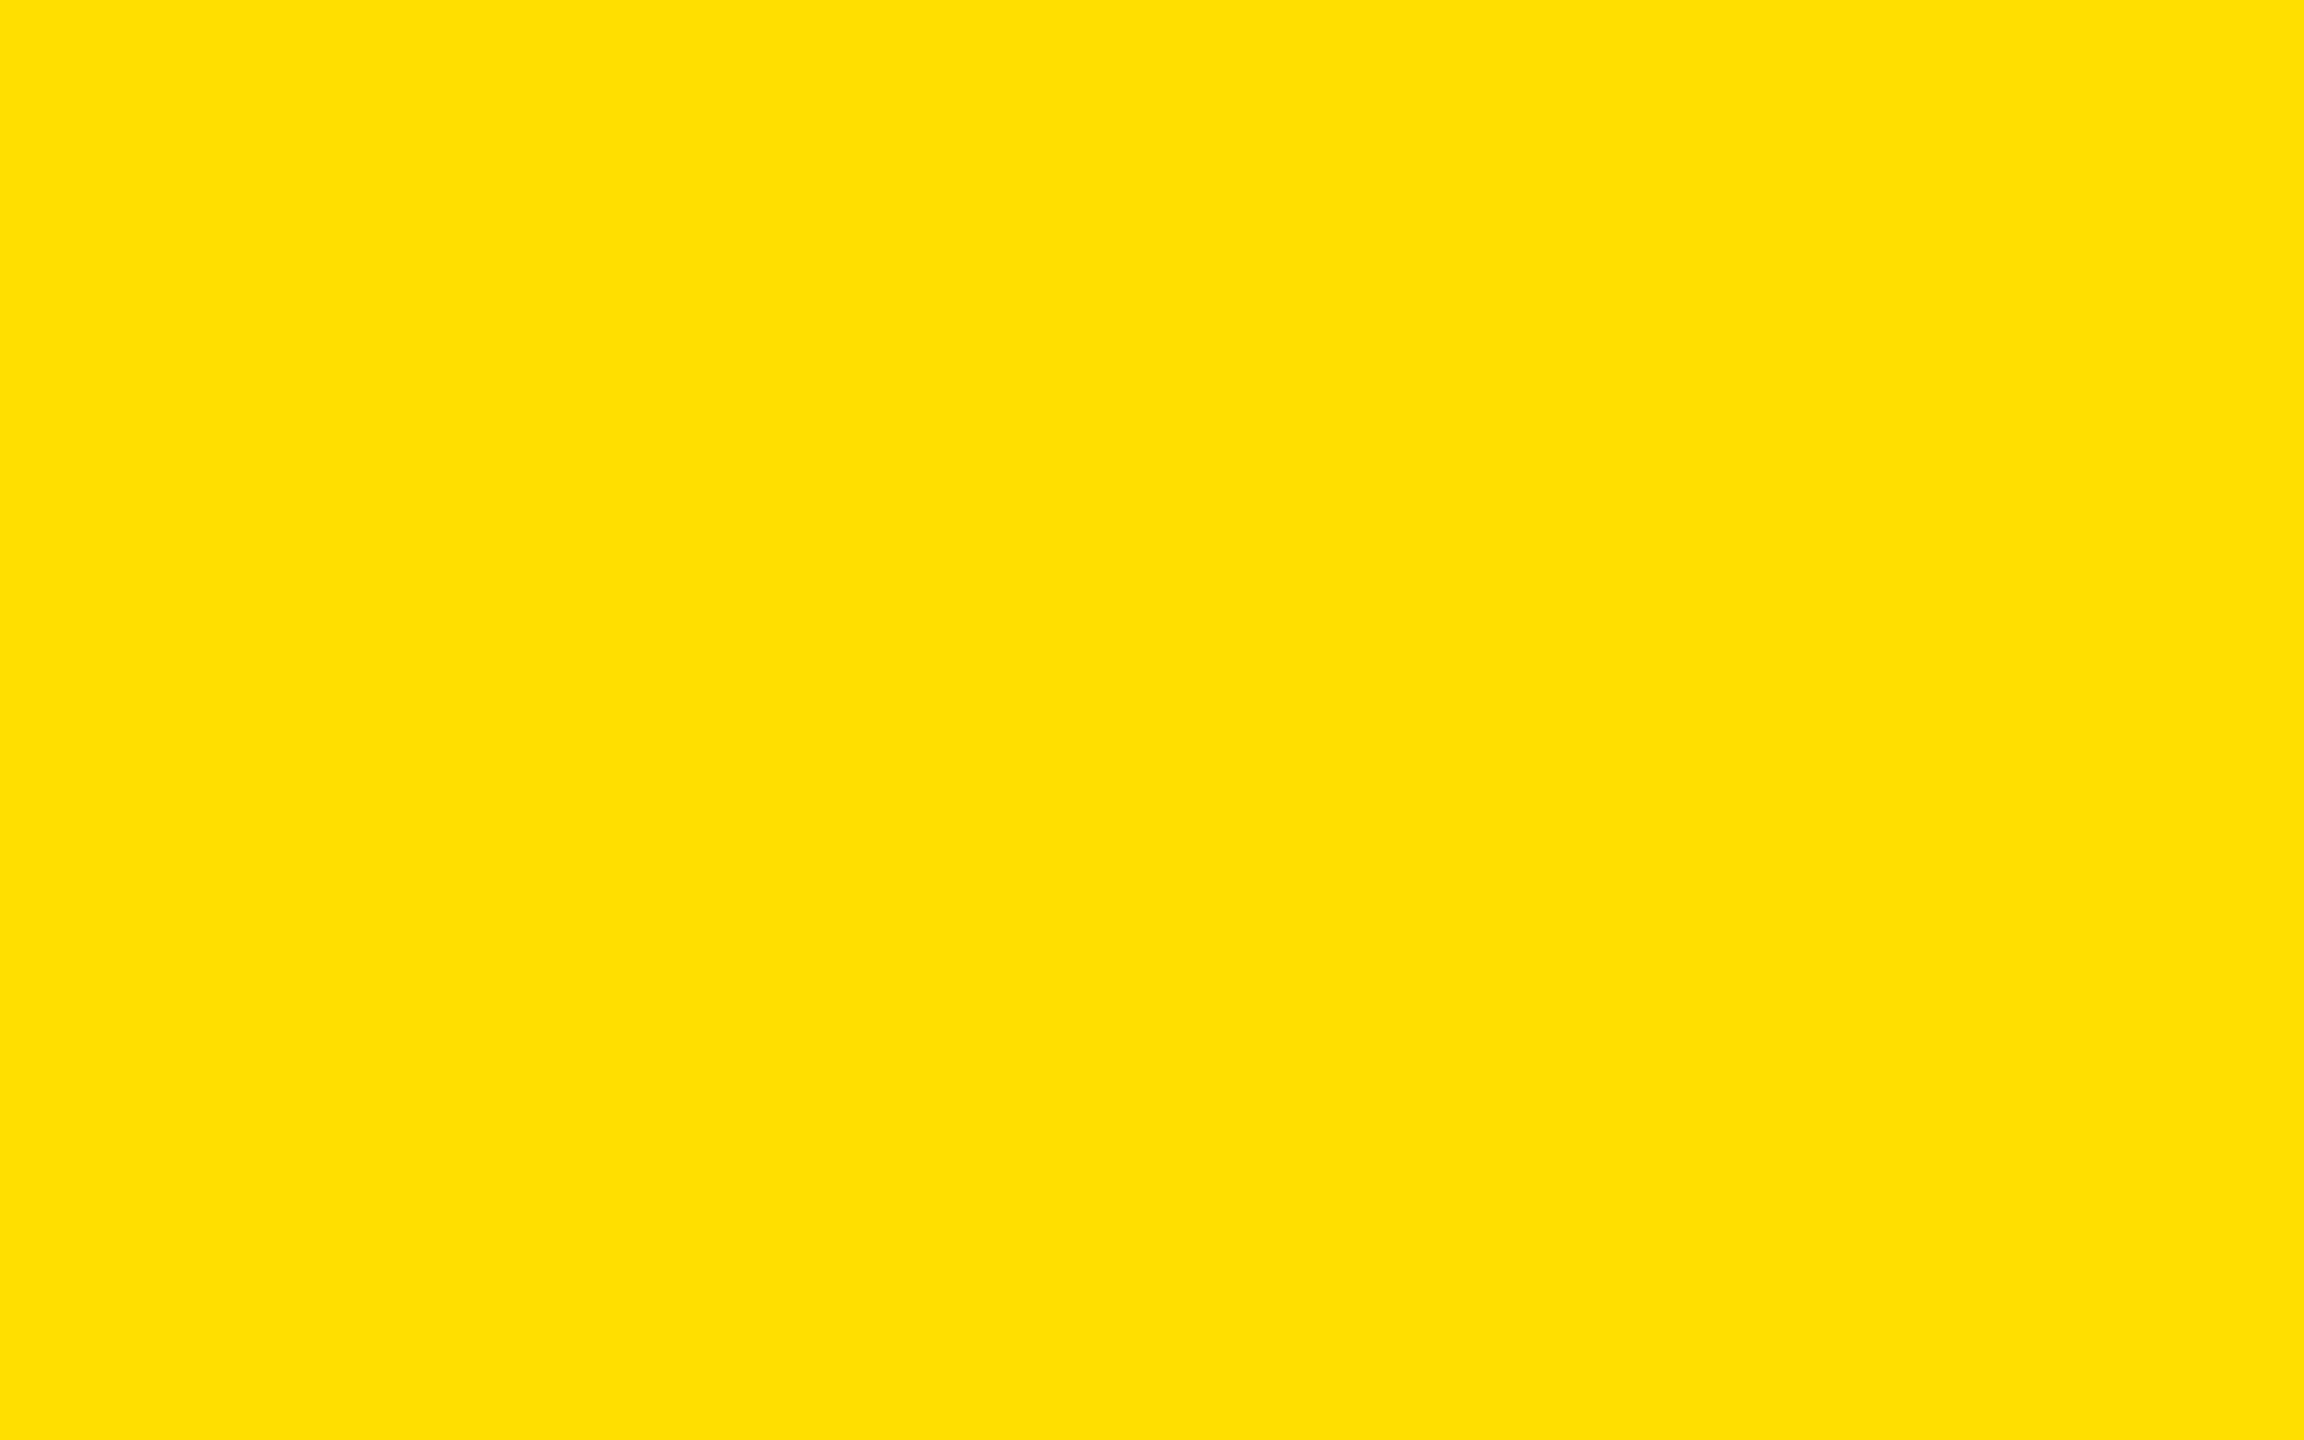 2304x1440 Yellow Pantone Solid Color Background